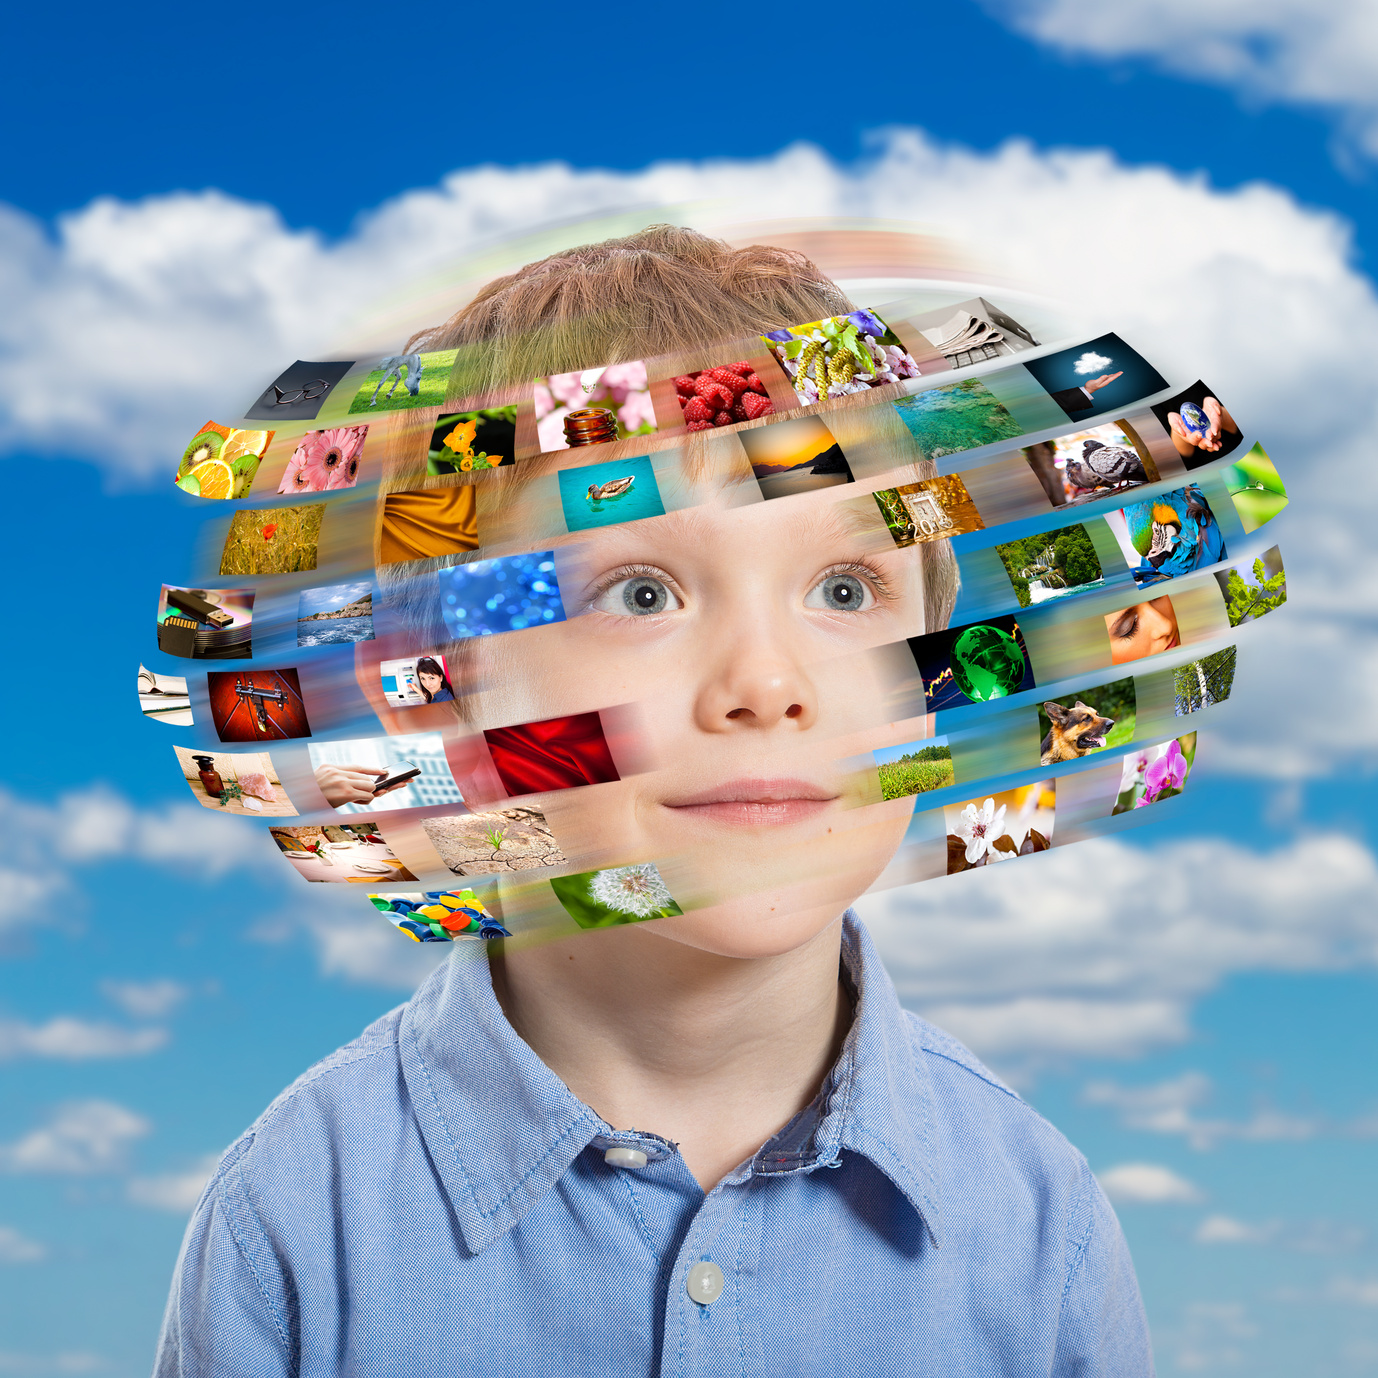 kid-boy-video-multimedia-Fotolia_59489026_Subscription_Monthly_M